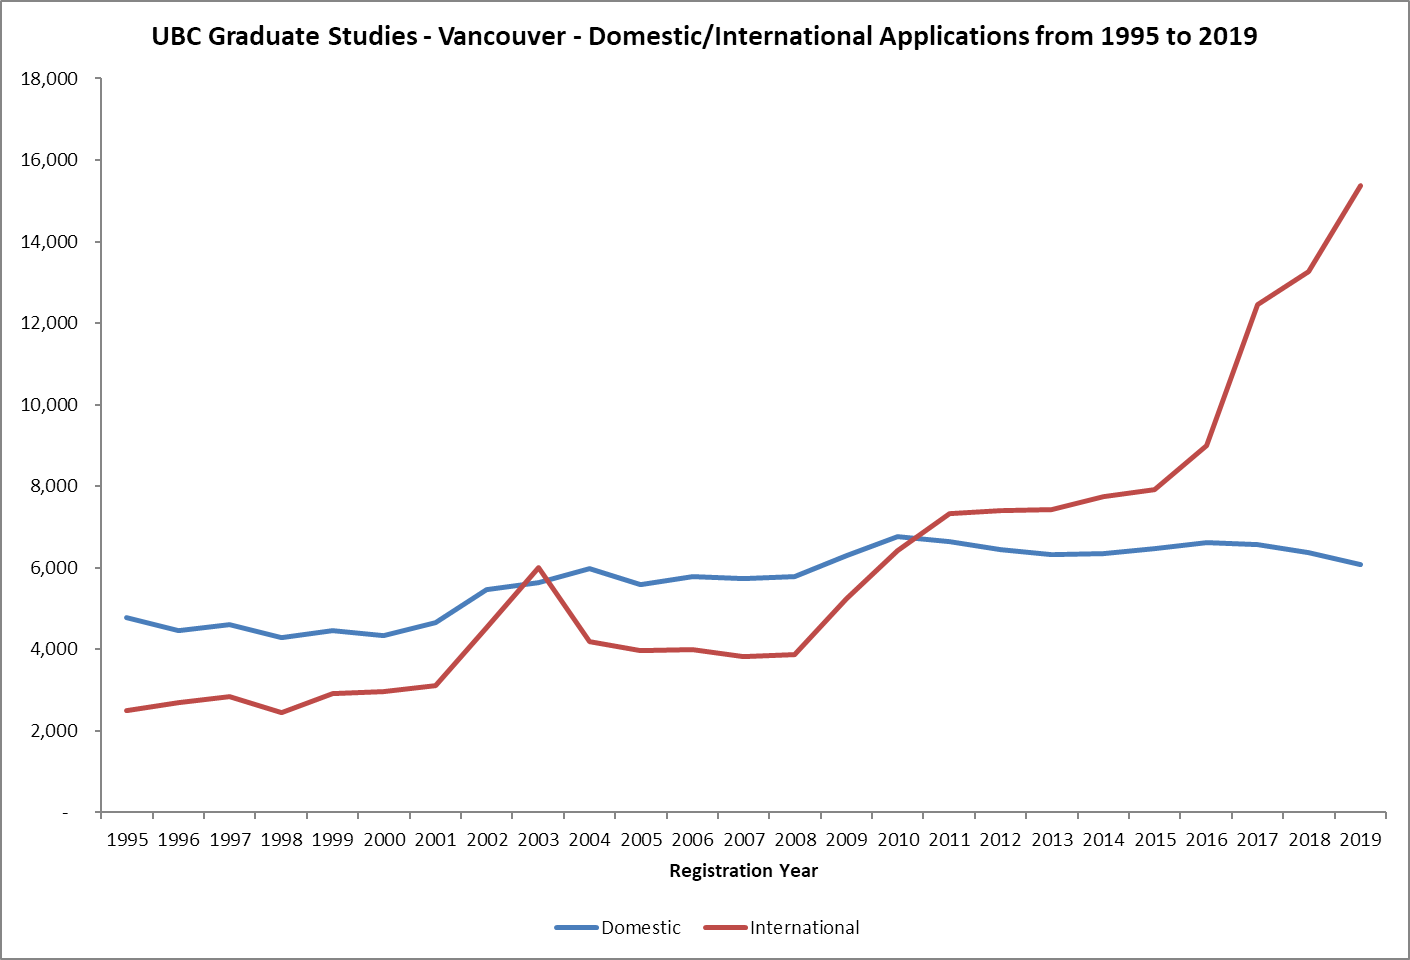 UBC Graduate Studies - Masters and Doctoral International Application Numbers from 1995 to 2019